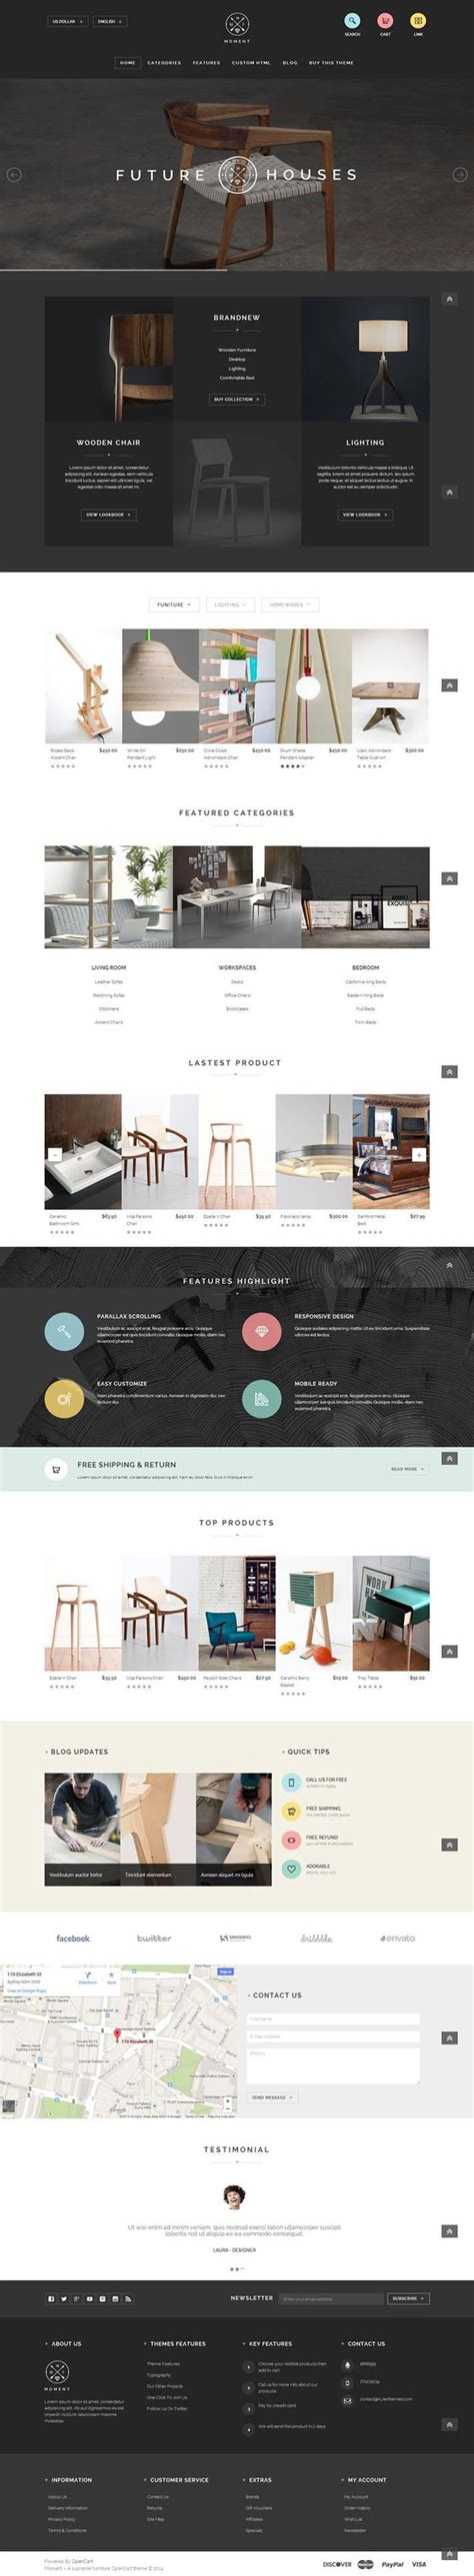 home care website design inspiration best wordpress themes for architects and architectural 25